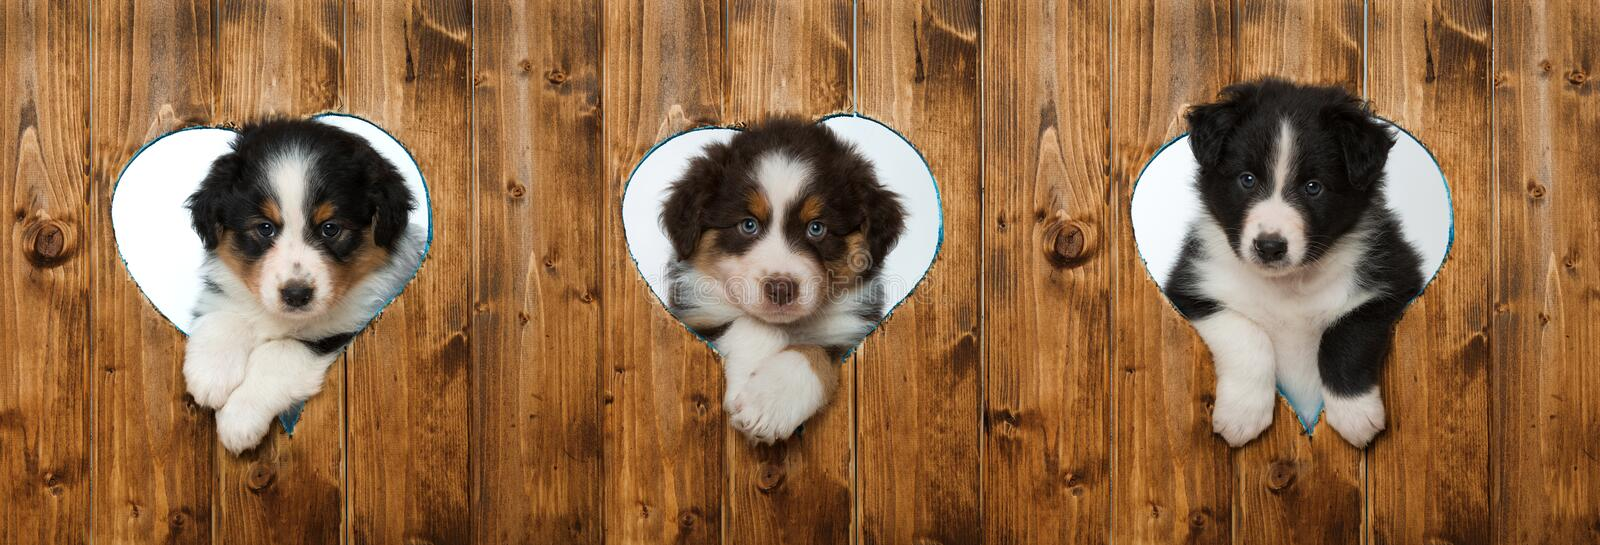 Three puppies. Puppies looking out of hearts in a wall stock photo